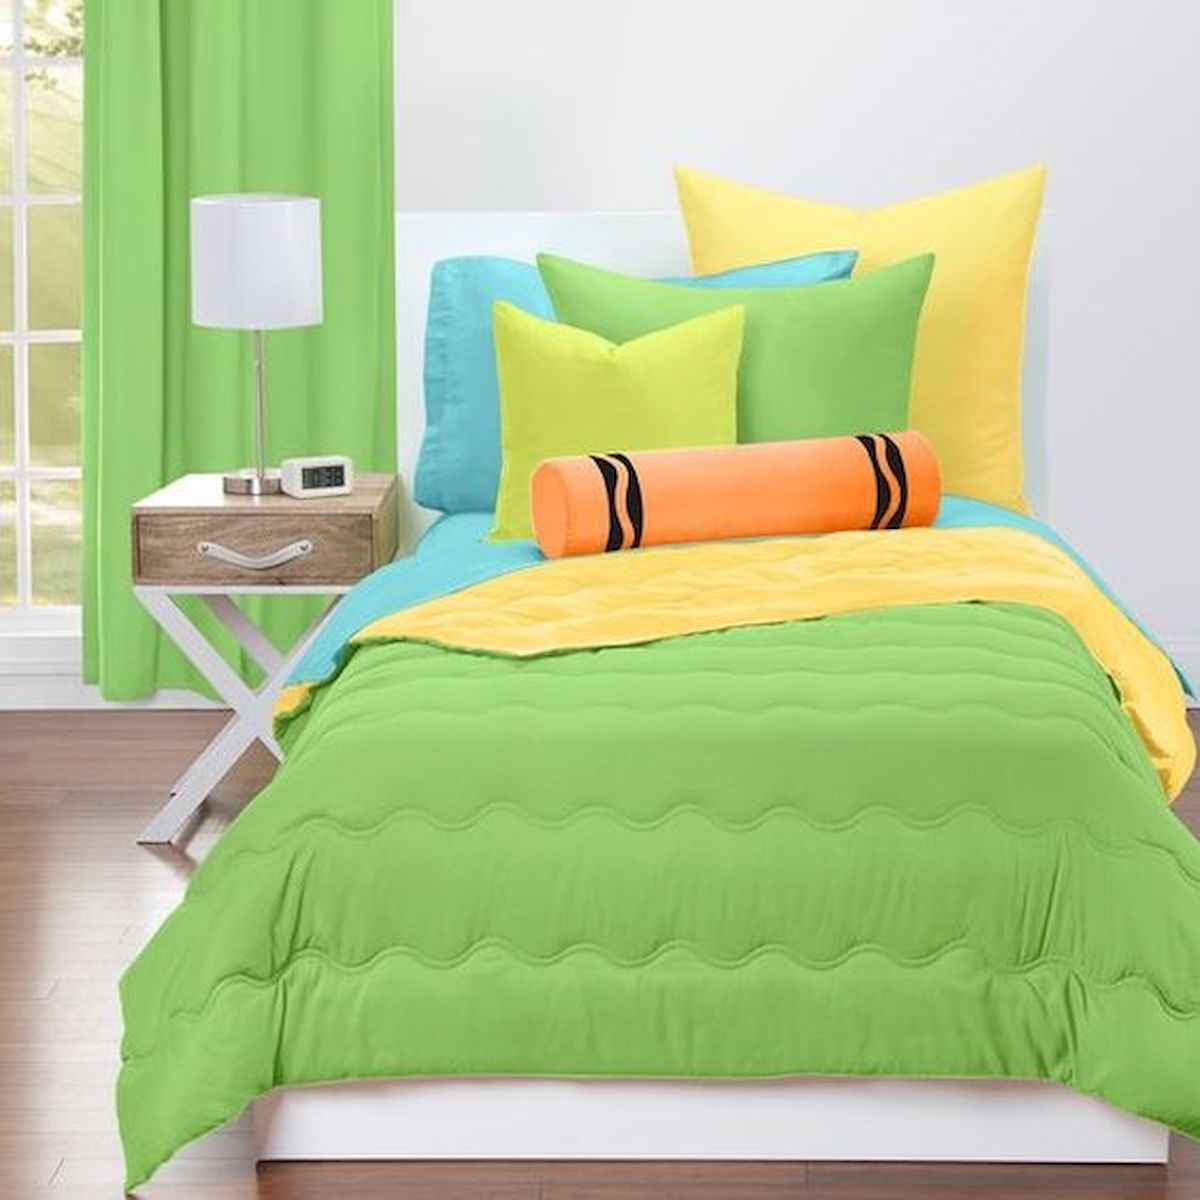 70+ Amazing Colorful Bedroom Decor Ideas And Remodel for Summer Project (25)